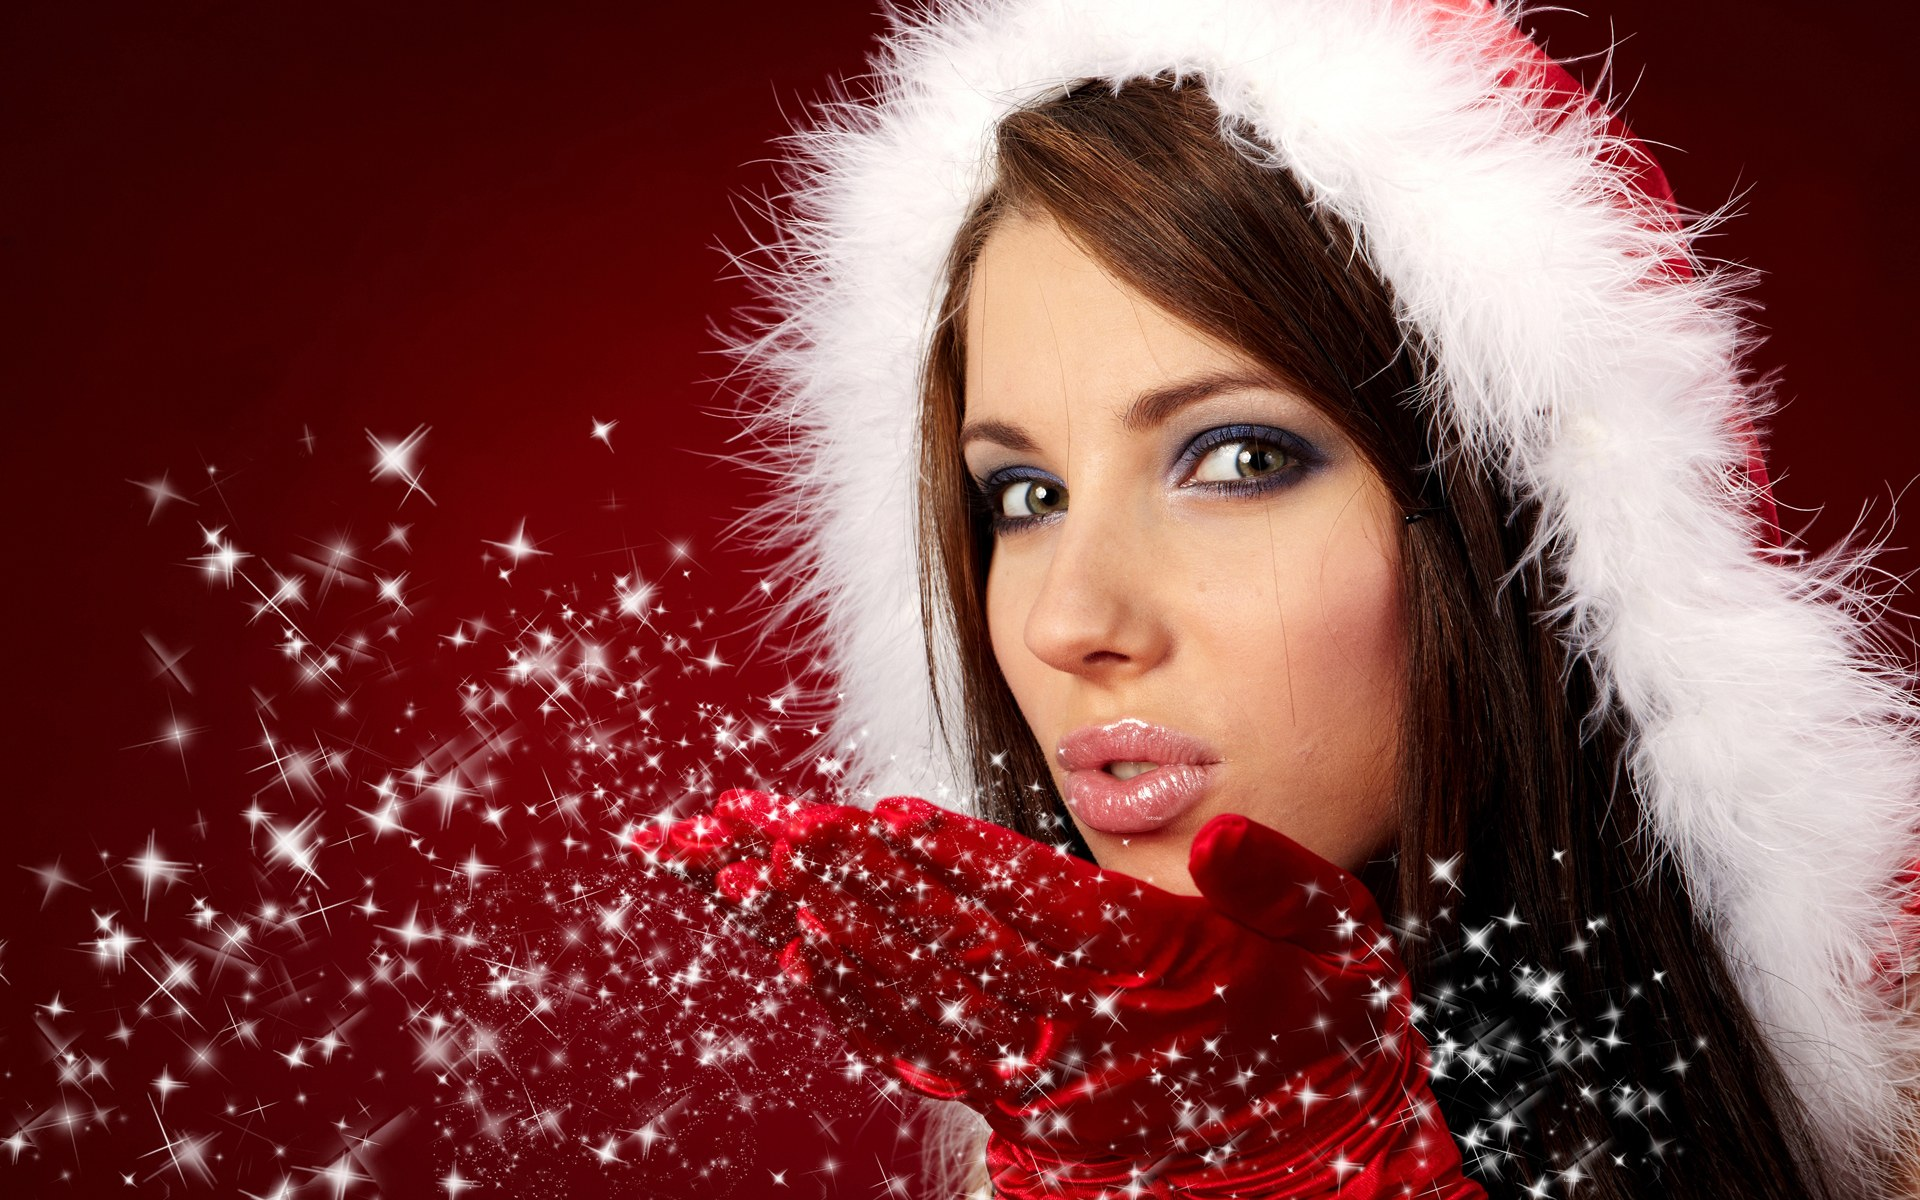 Christmas_girls_Photo_2_santa_girl.jpg